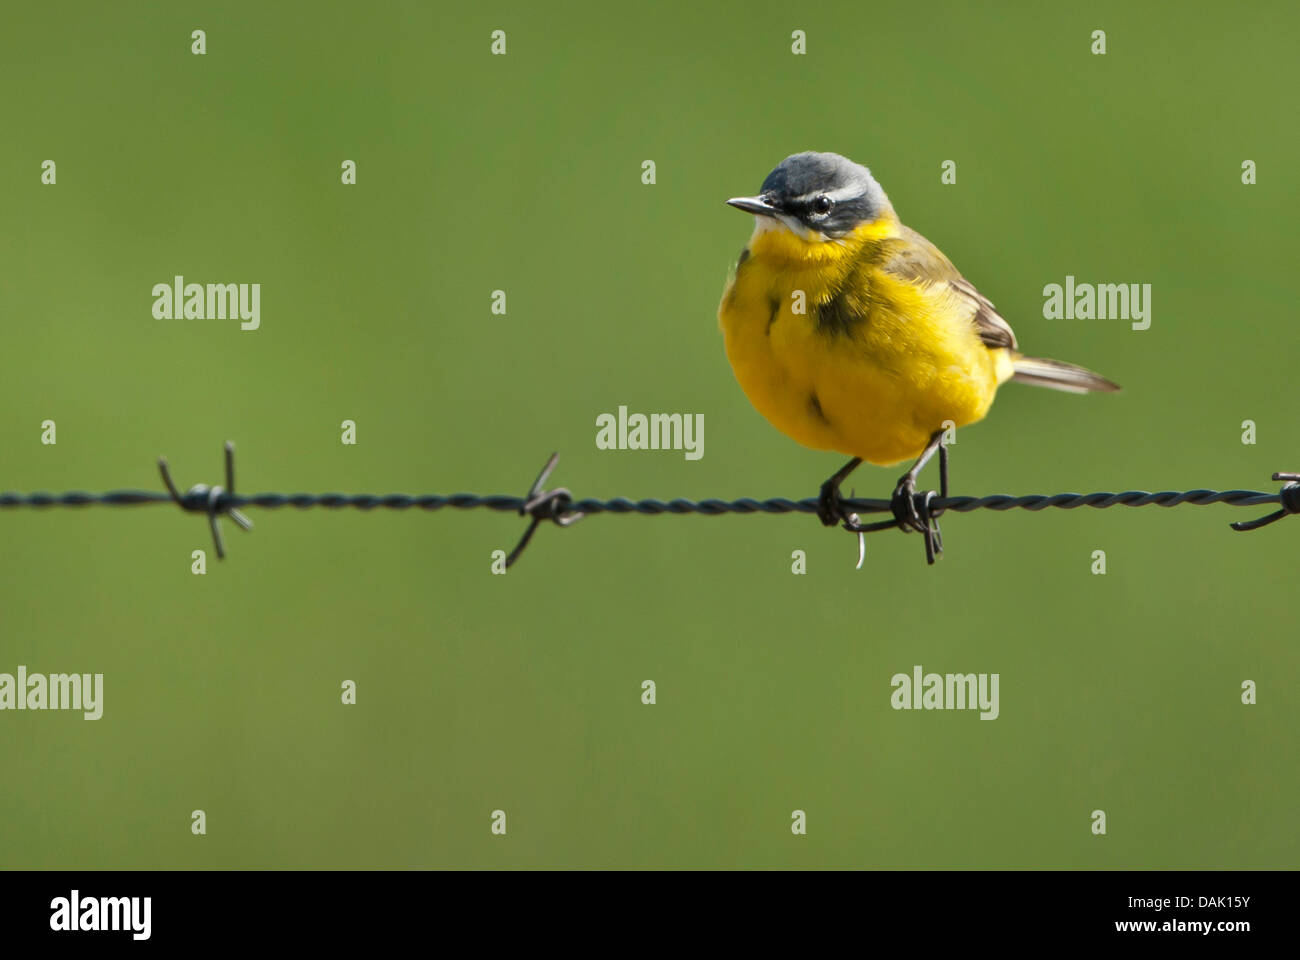 Wire Tails Stock Photos Images Alamy Dak Wiring Diagram Yellow Wagtail Motacilla Flava On Barbed Germany Lower Saxony